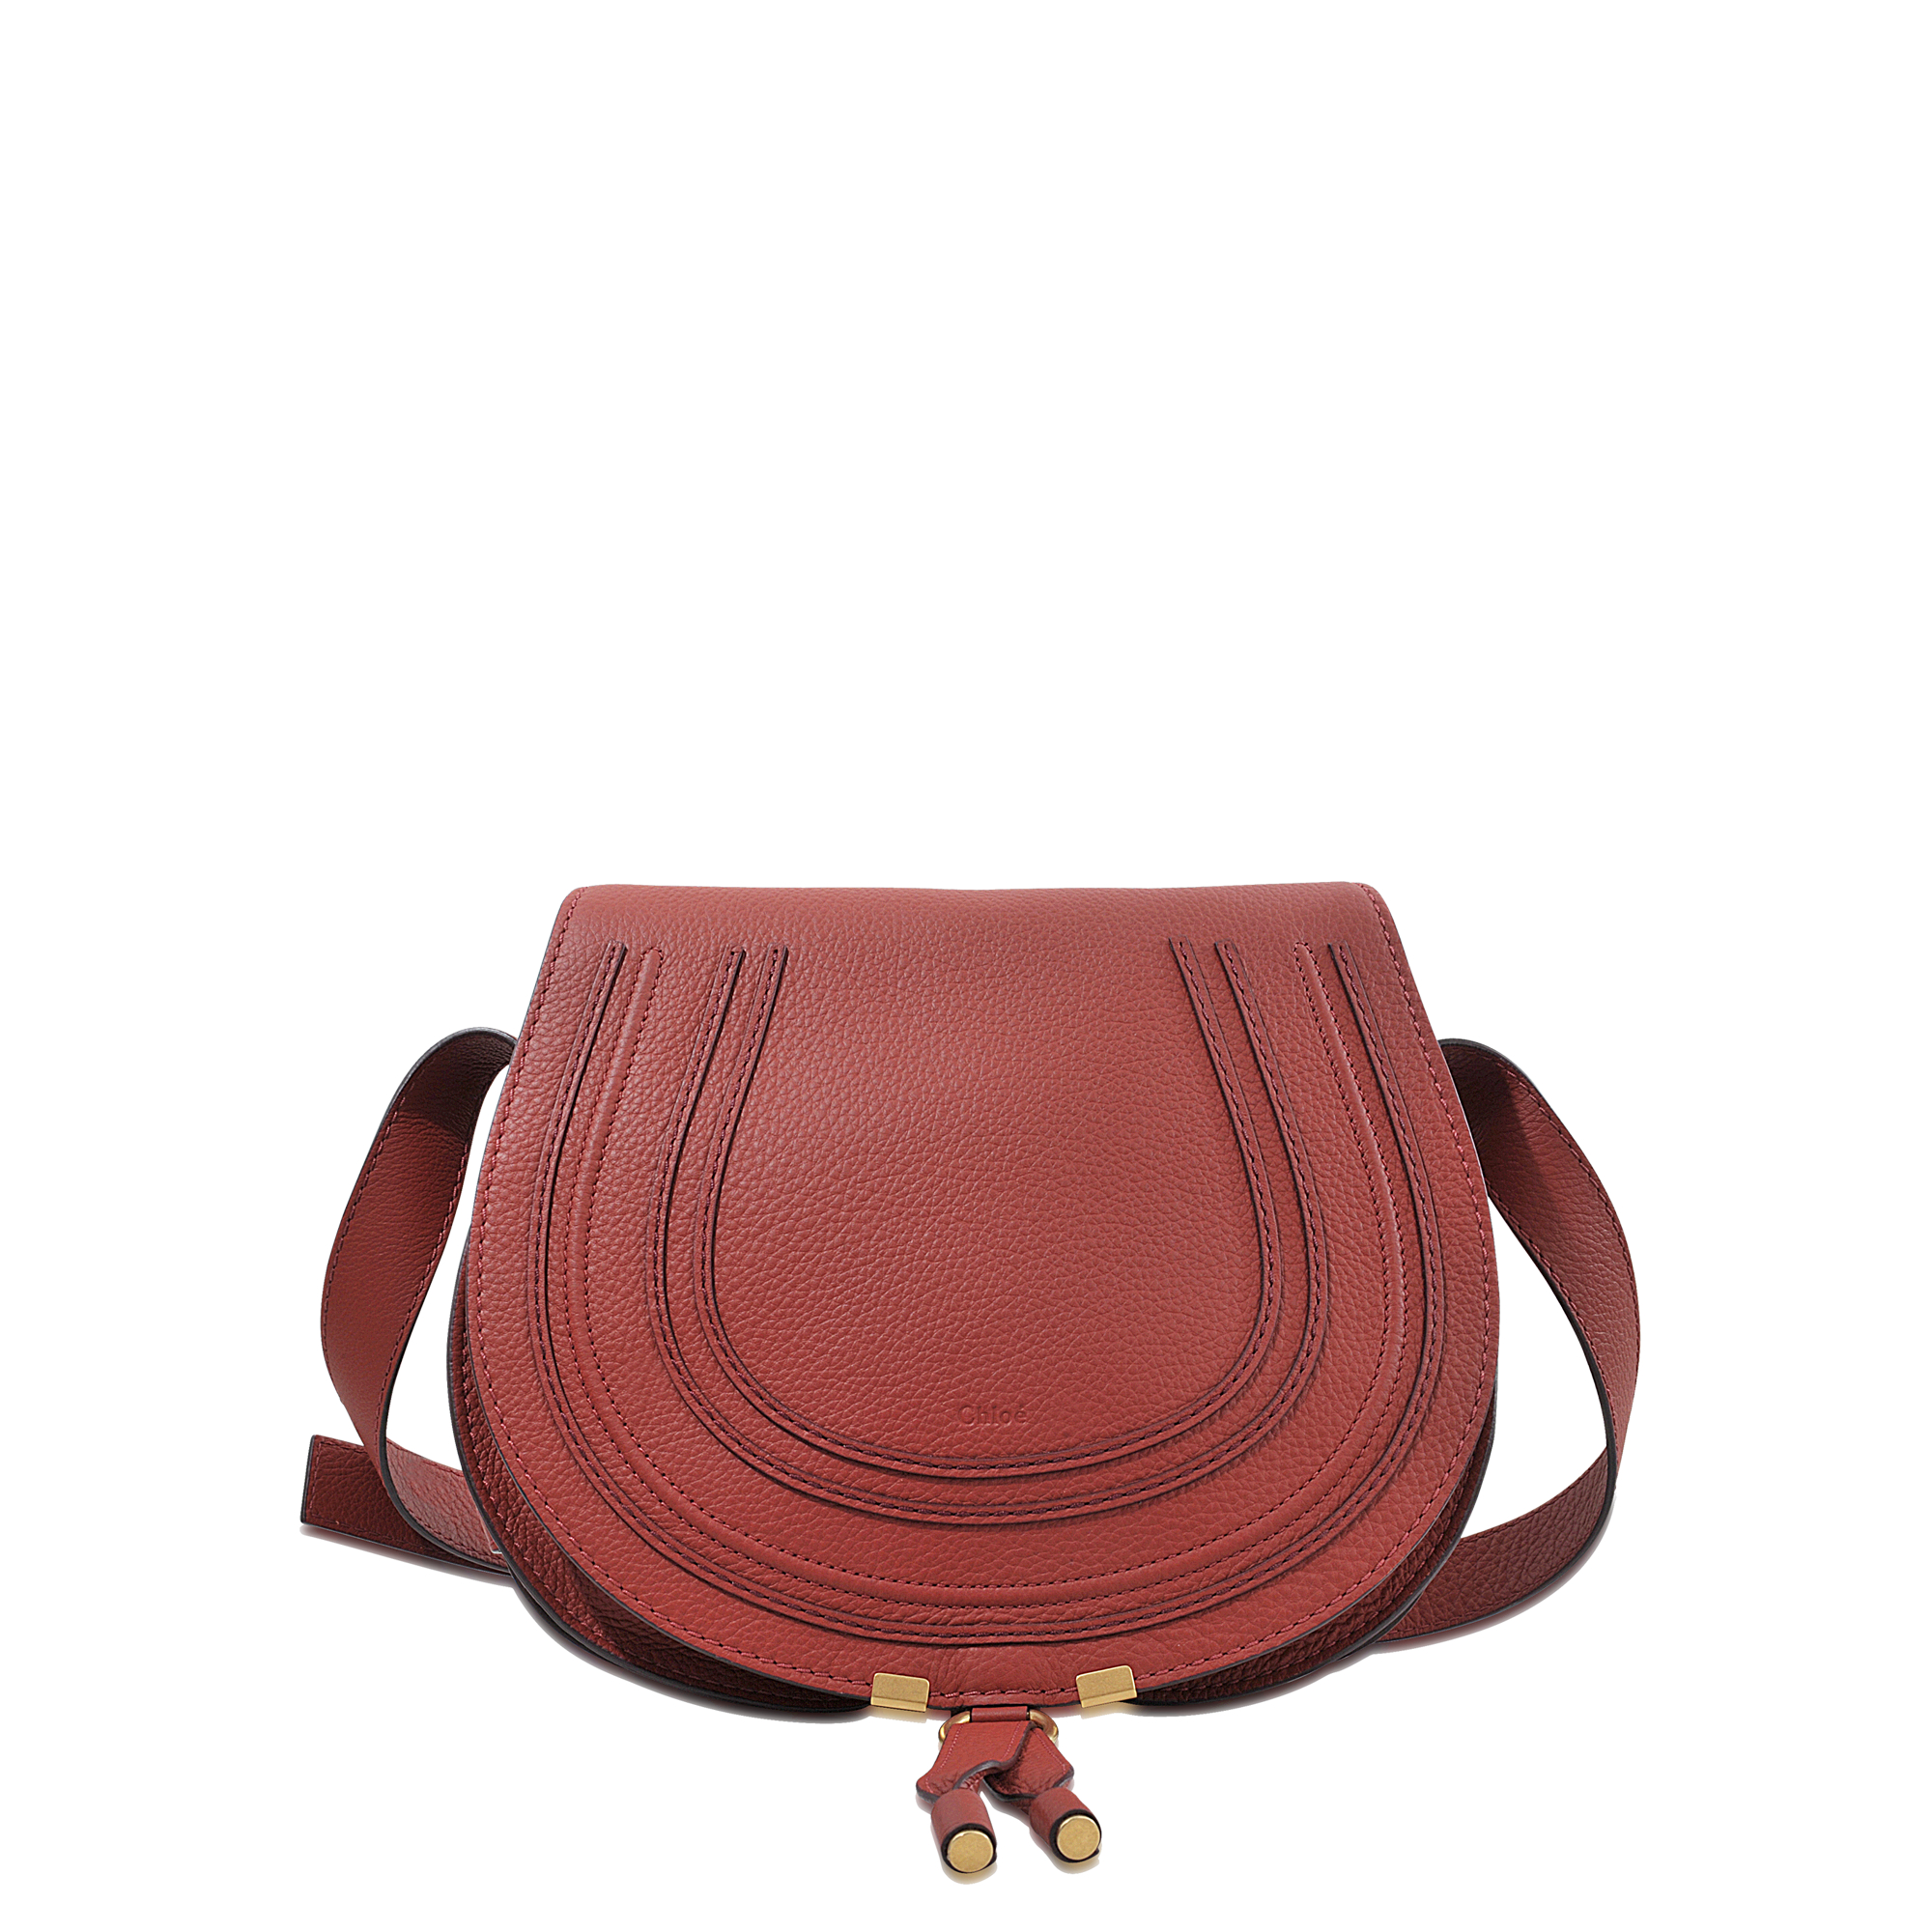 best hand bags - Chlo�� Medium Marcie Saddle Bag in Brown | Lyst